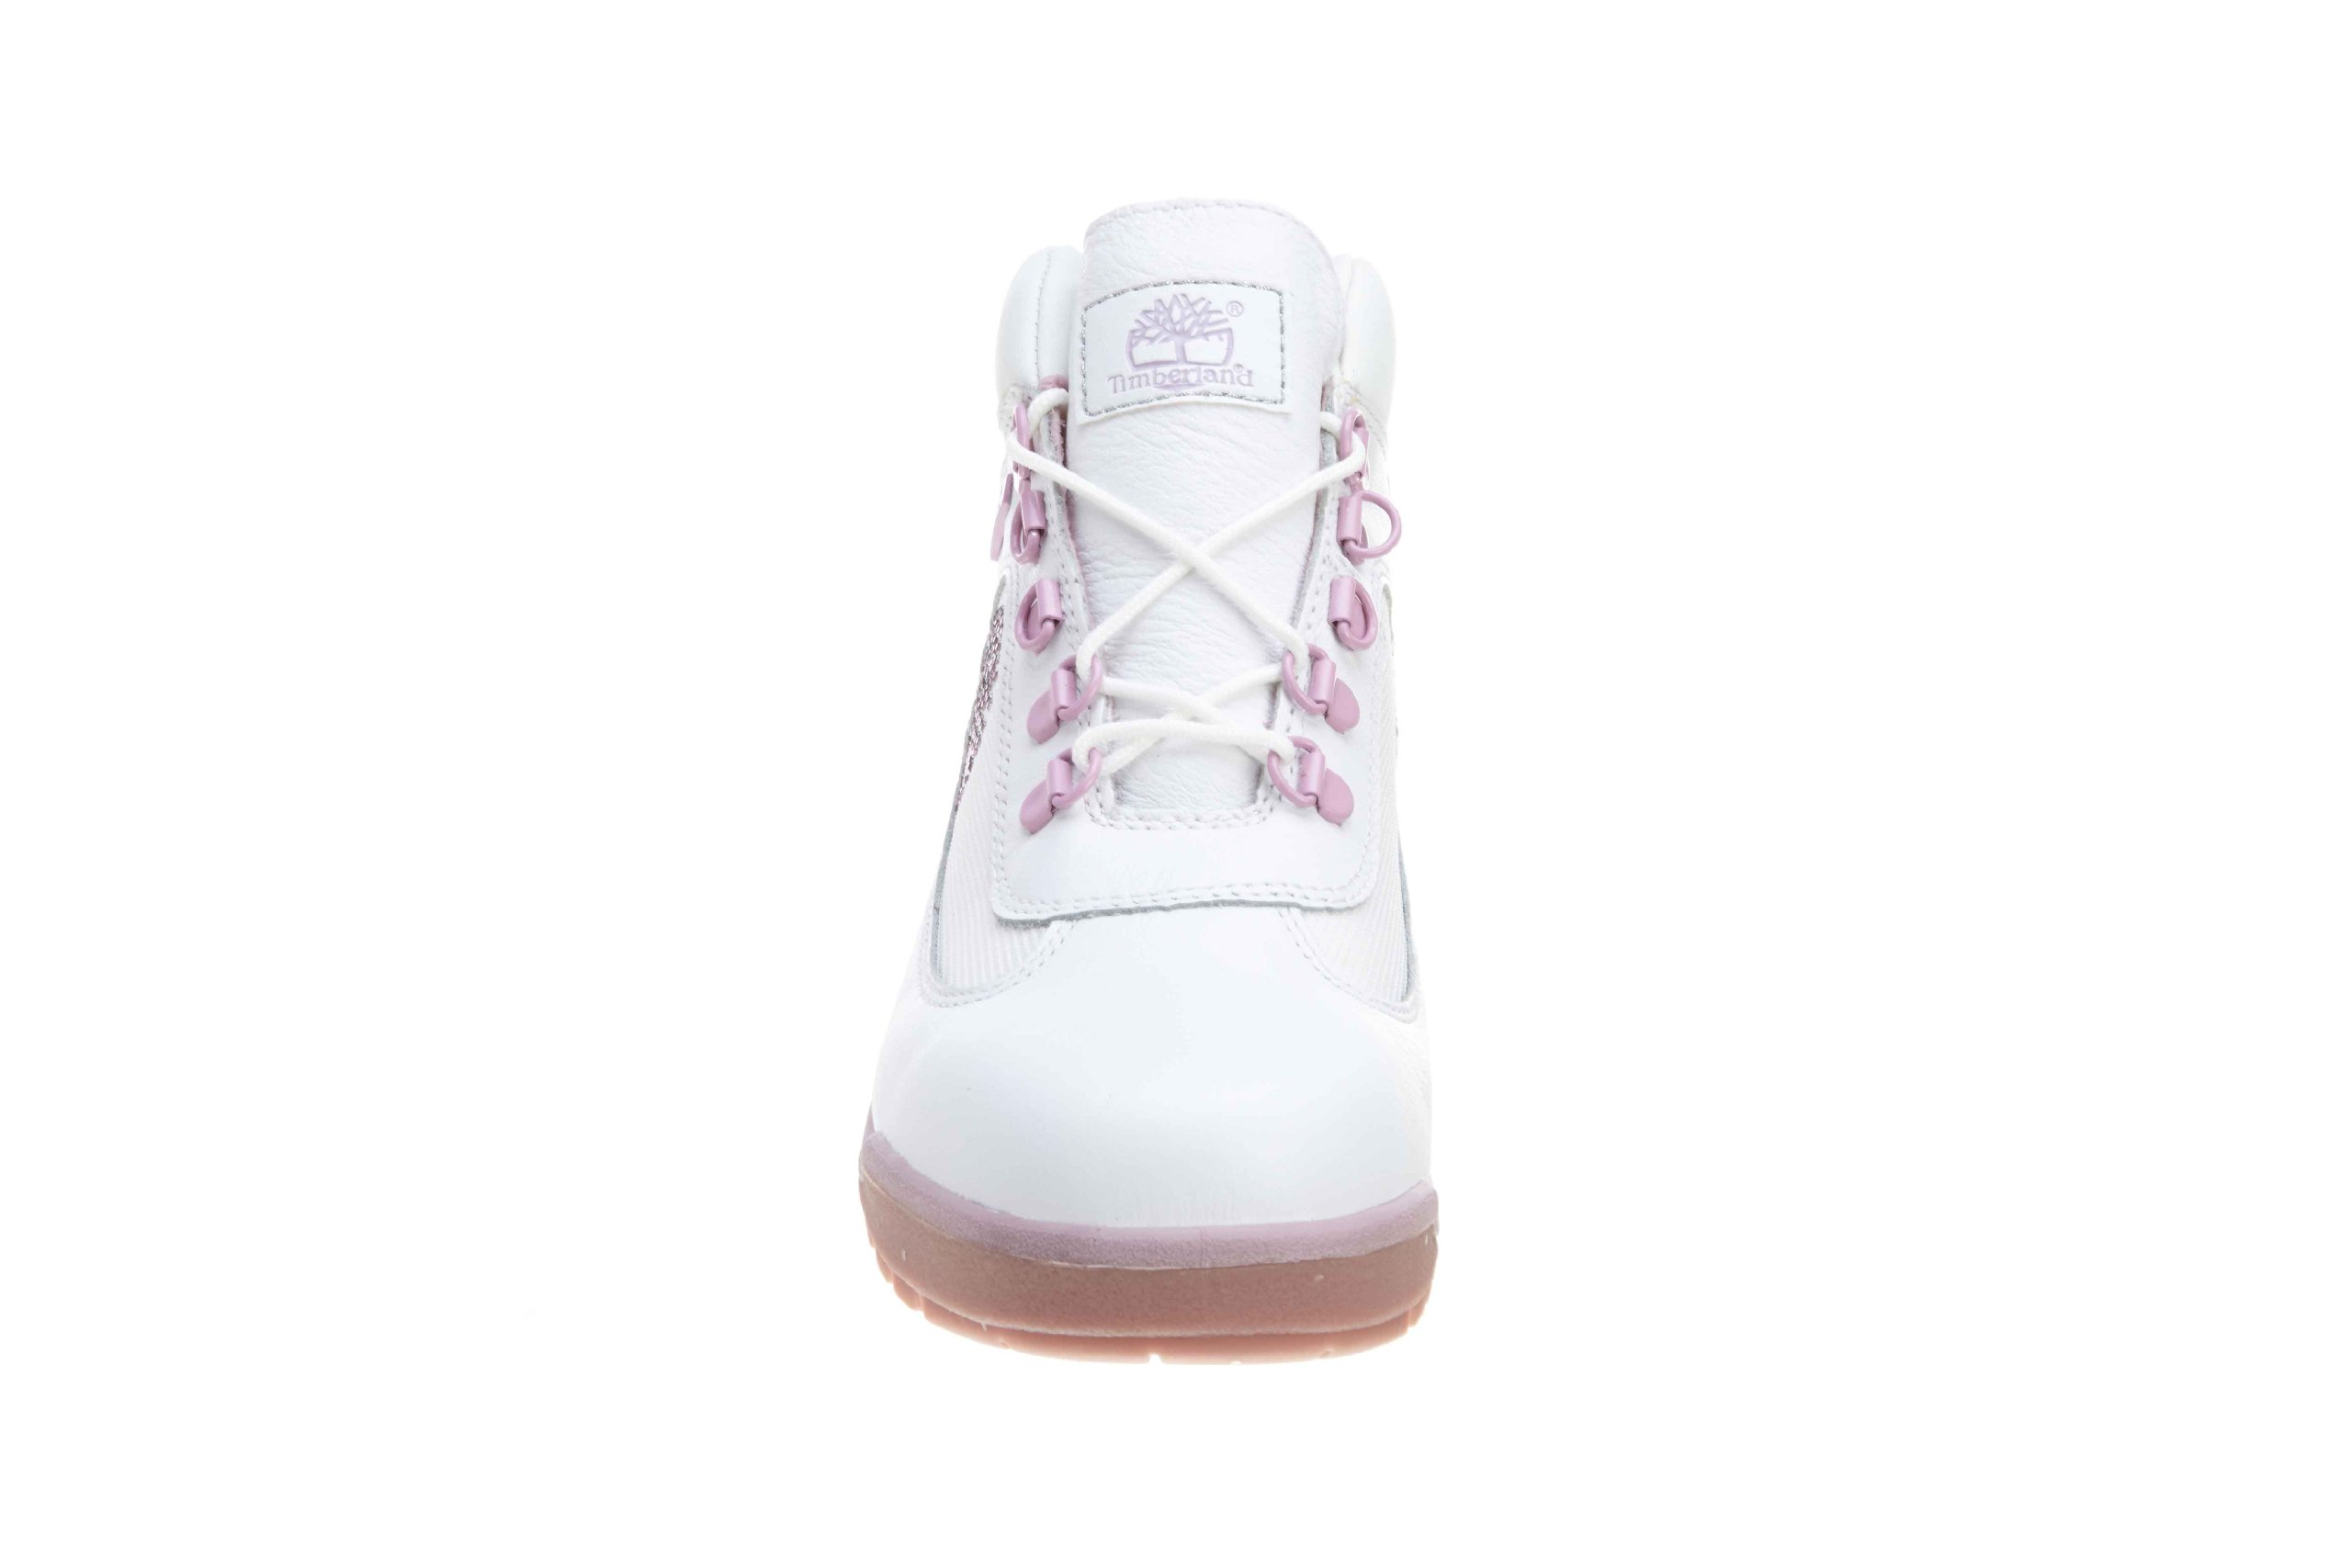 Timberland Field Boots (Gs) Big Kids Style: 25985-LUXWHITE Size: 4.5 by Timberland (Image #5)